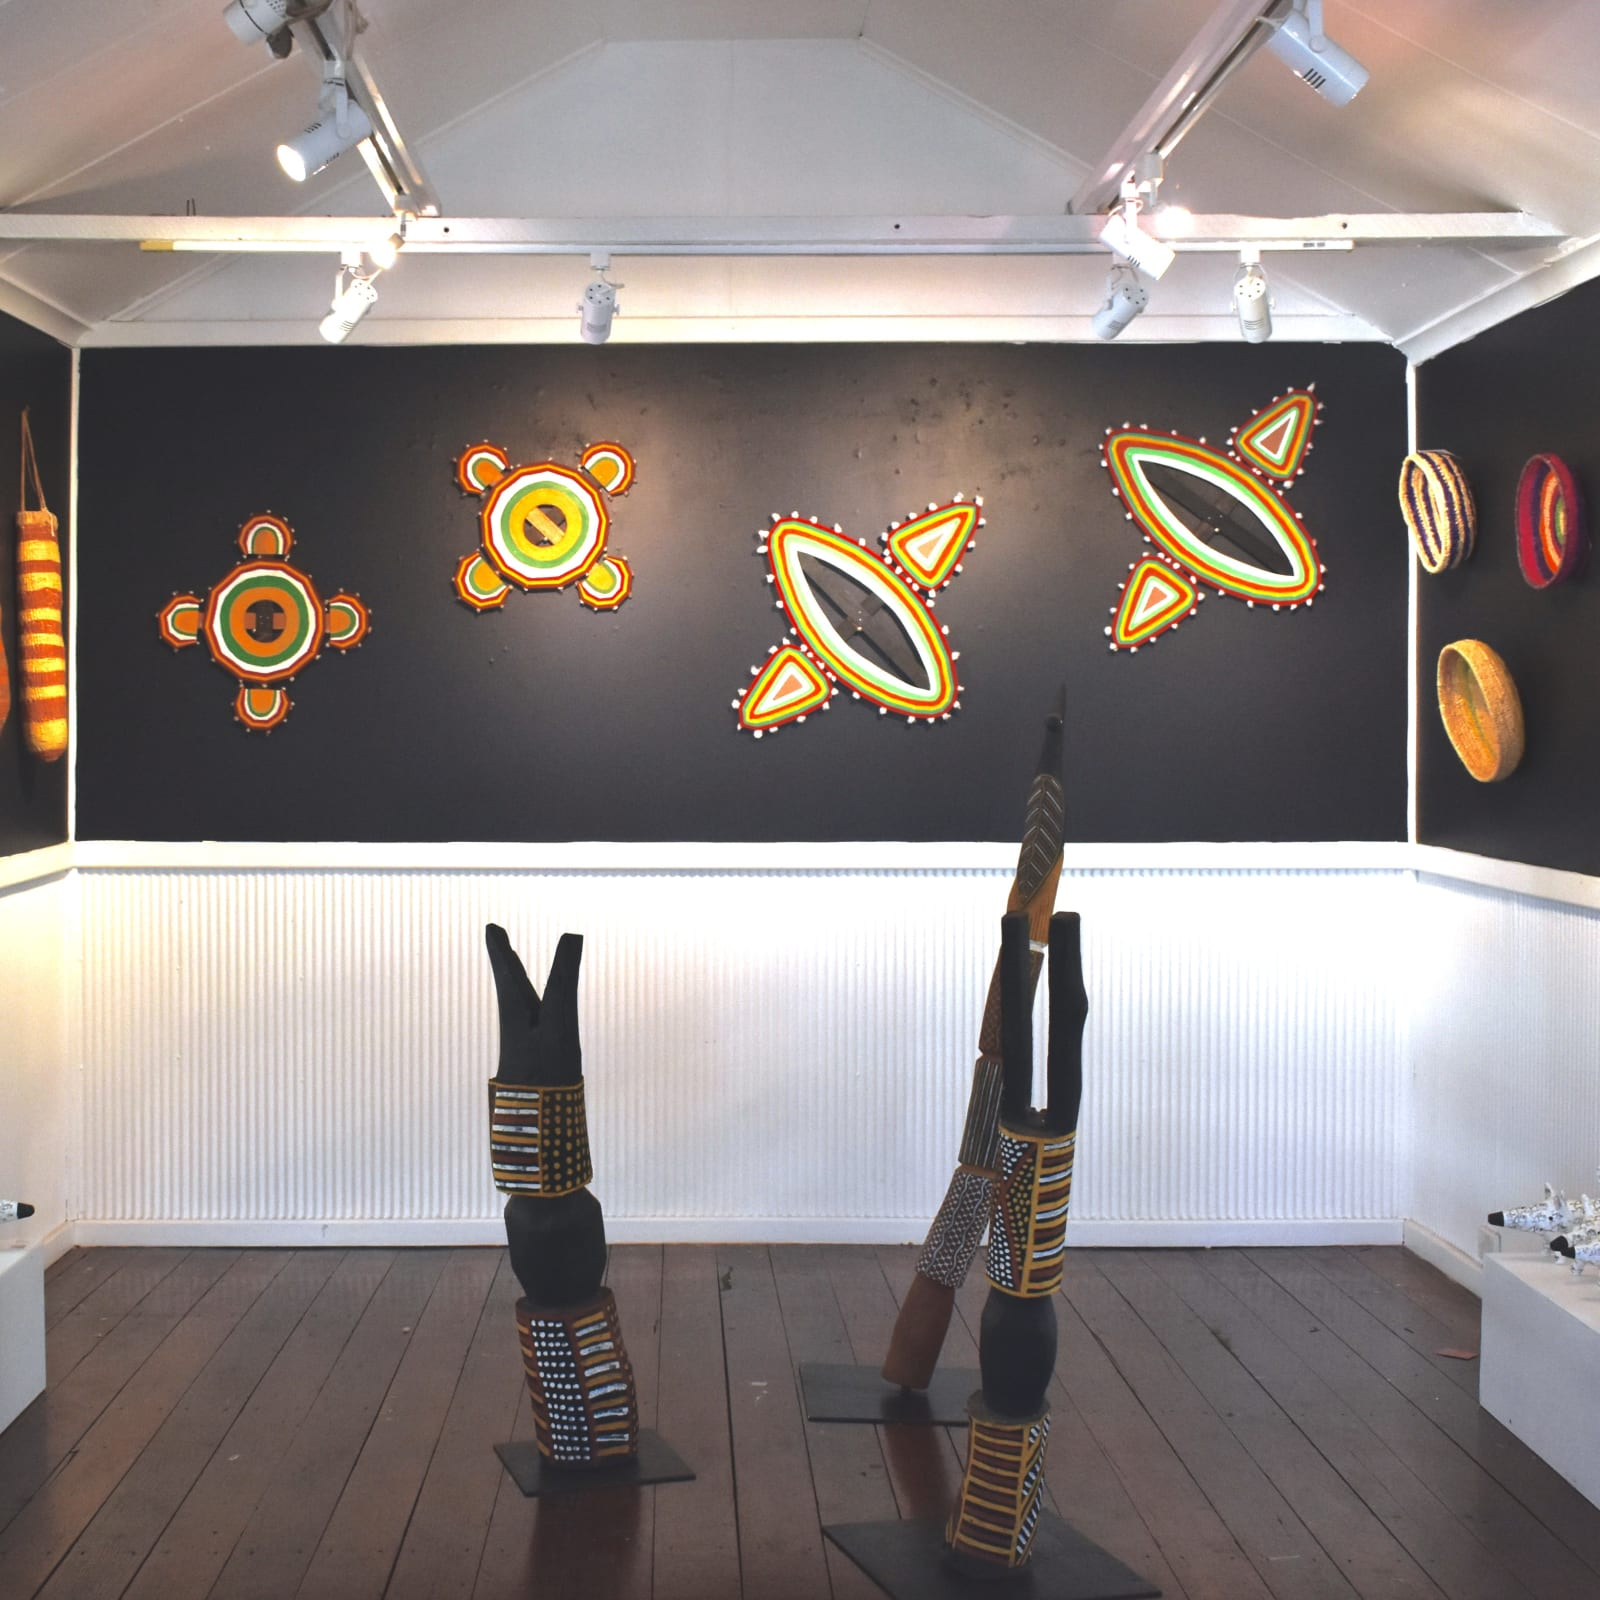 Installation image of Dimensional's 2019